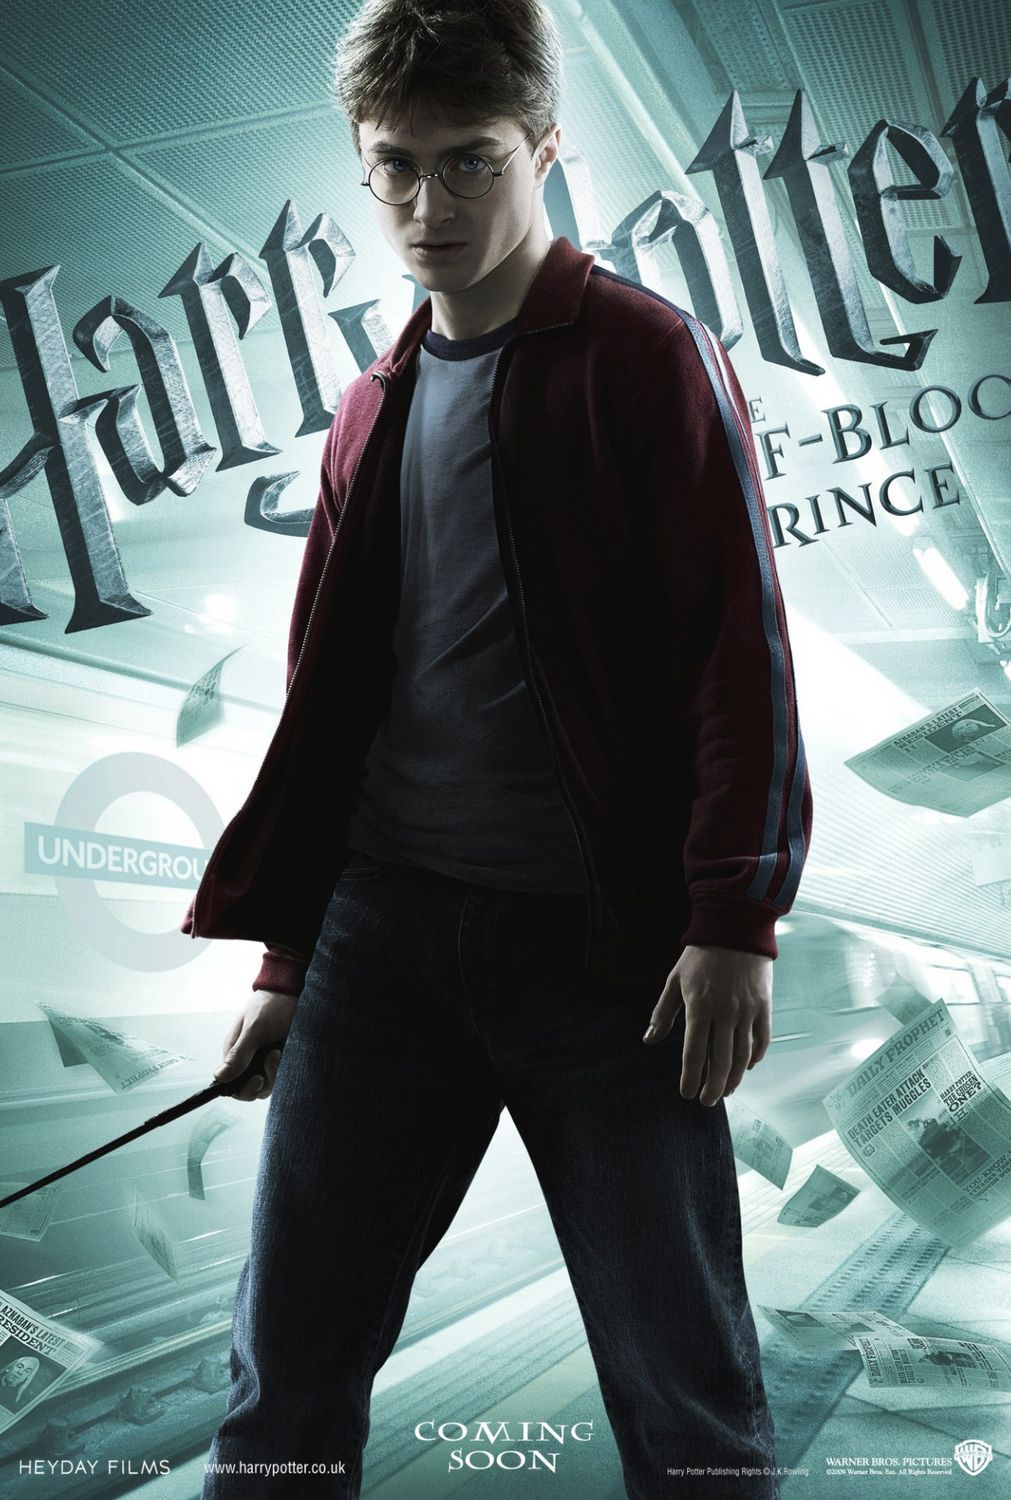 harry potter and the halfblood prince poster 4 mr movie